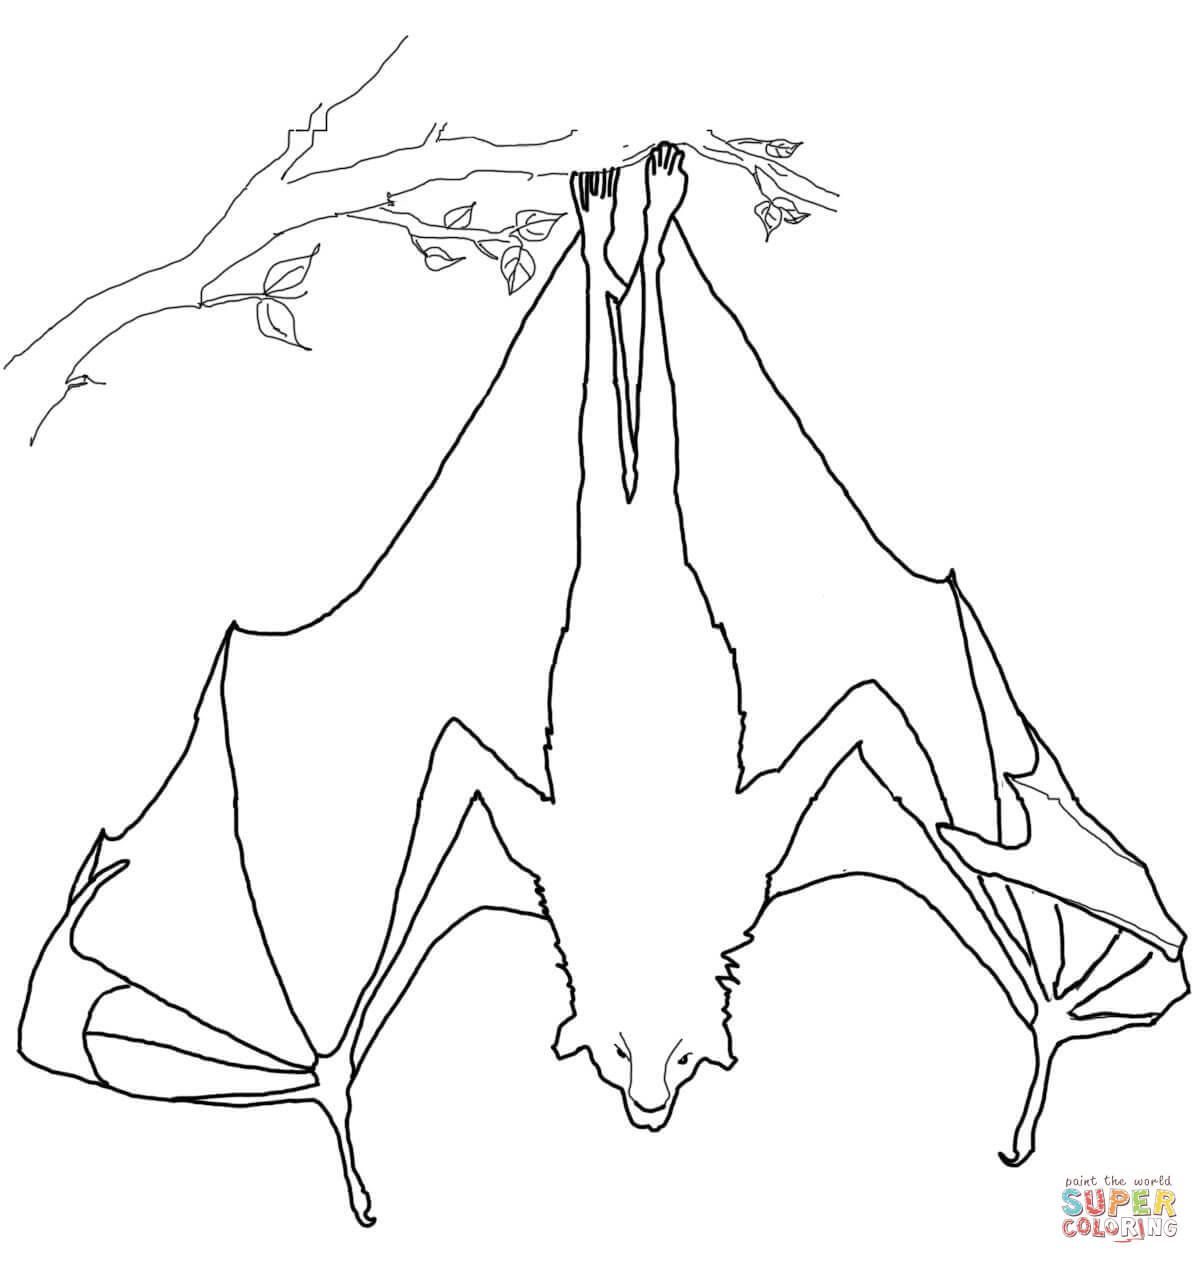 Bat clipart flying fox. Coloring pages free hanging